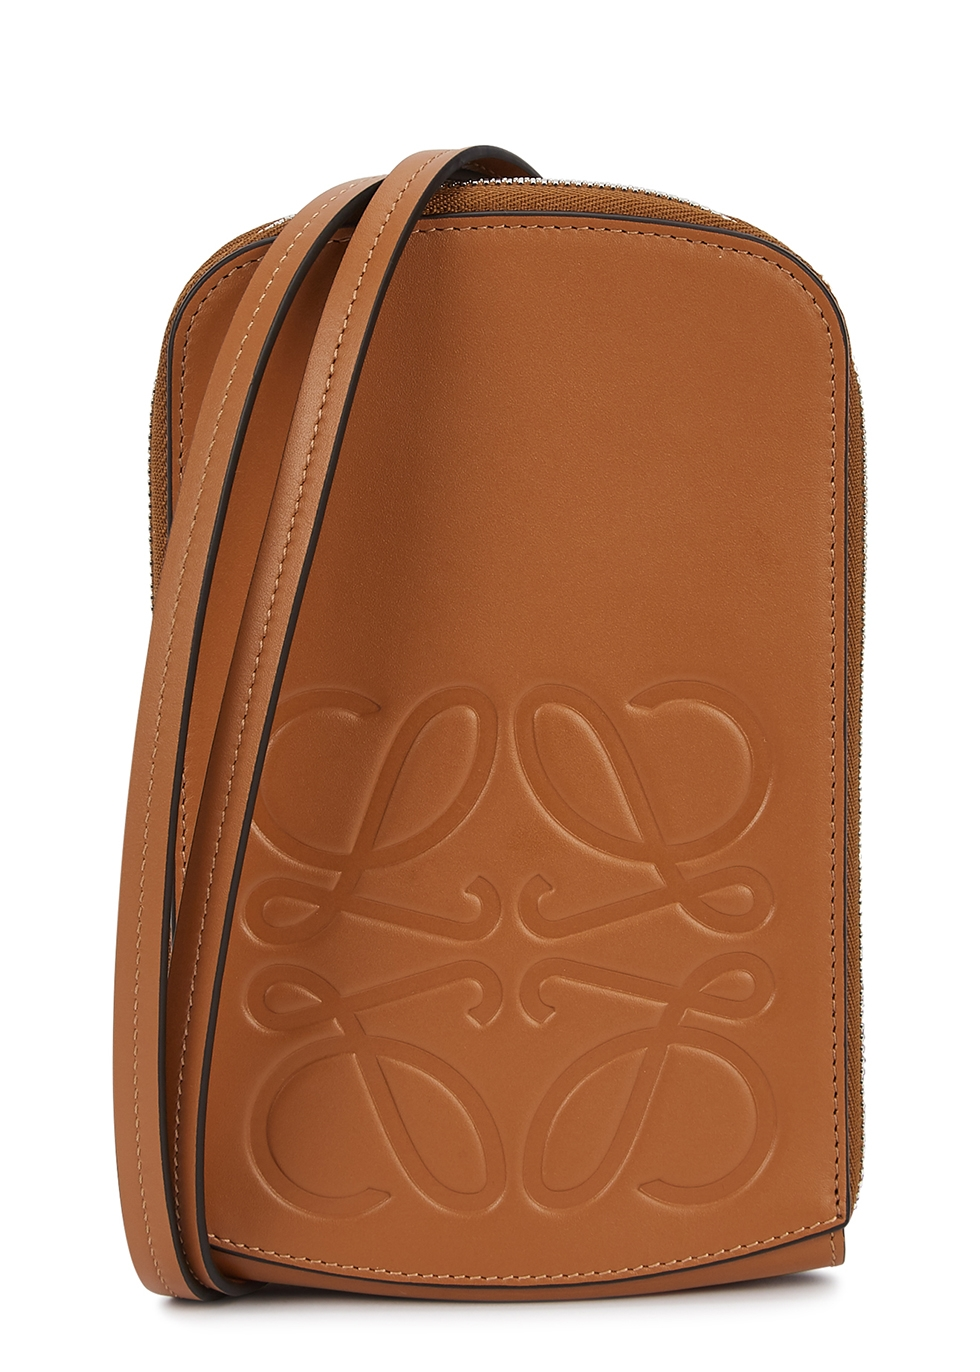 Brown logo leather neck pouch